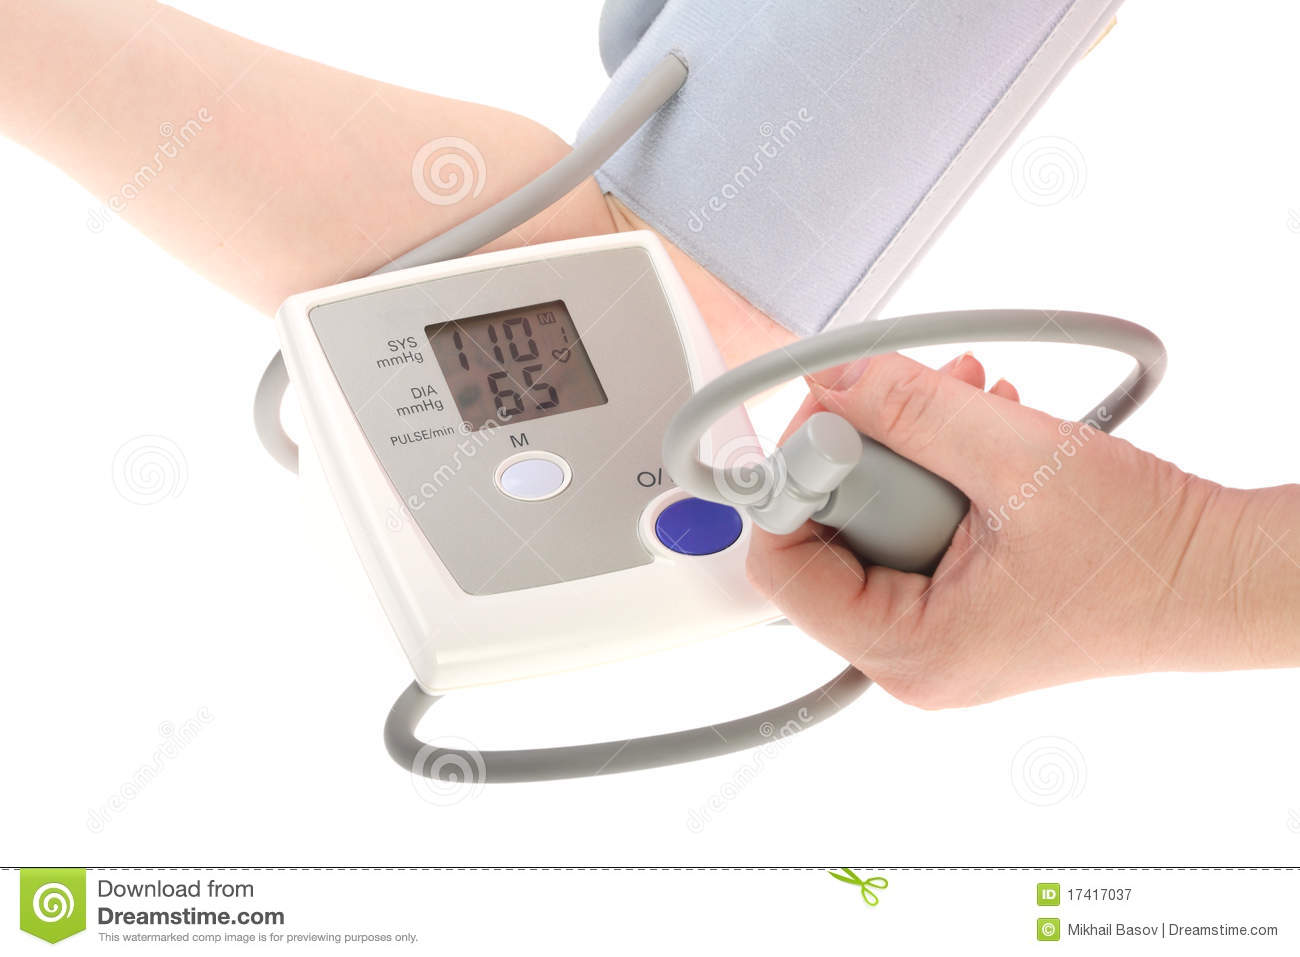 Electrical Measuring Devices : Electrical device for measuring pressure royalty free